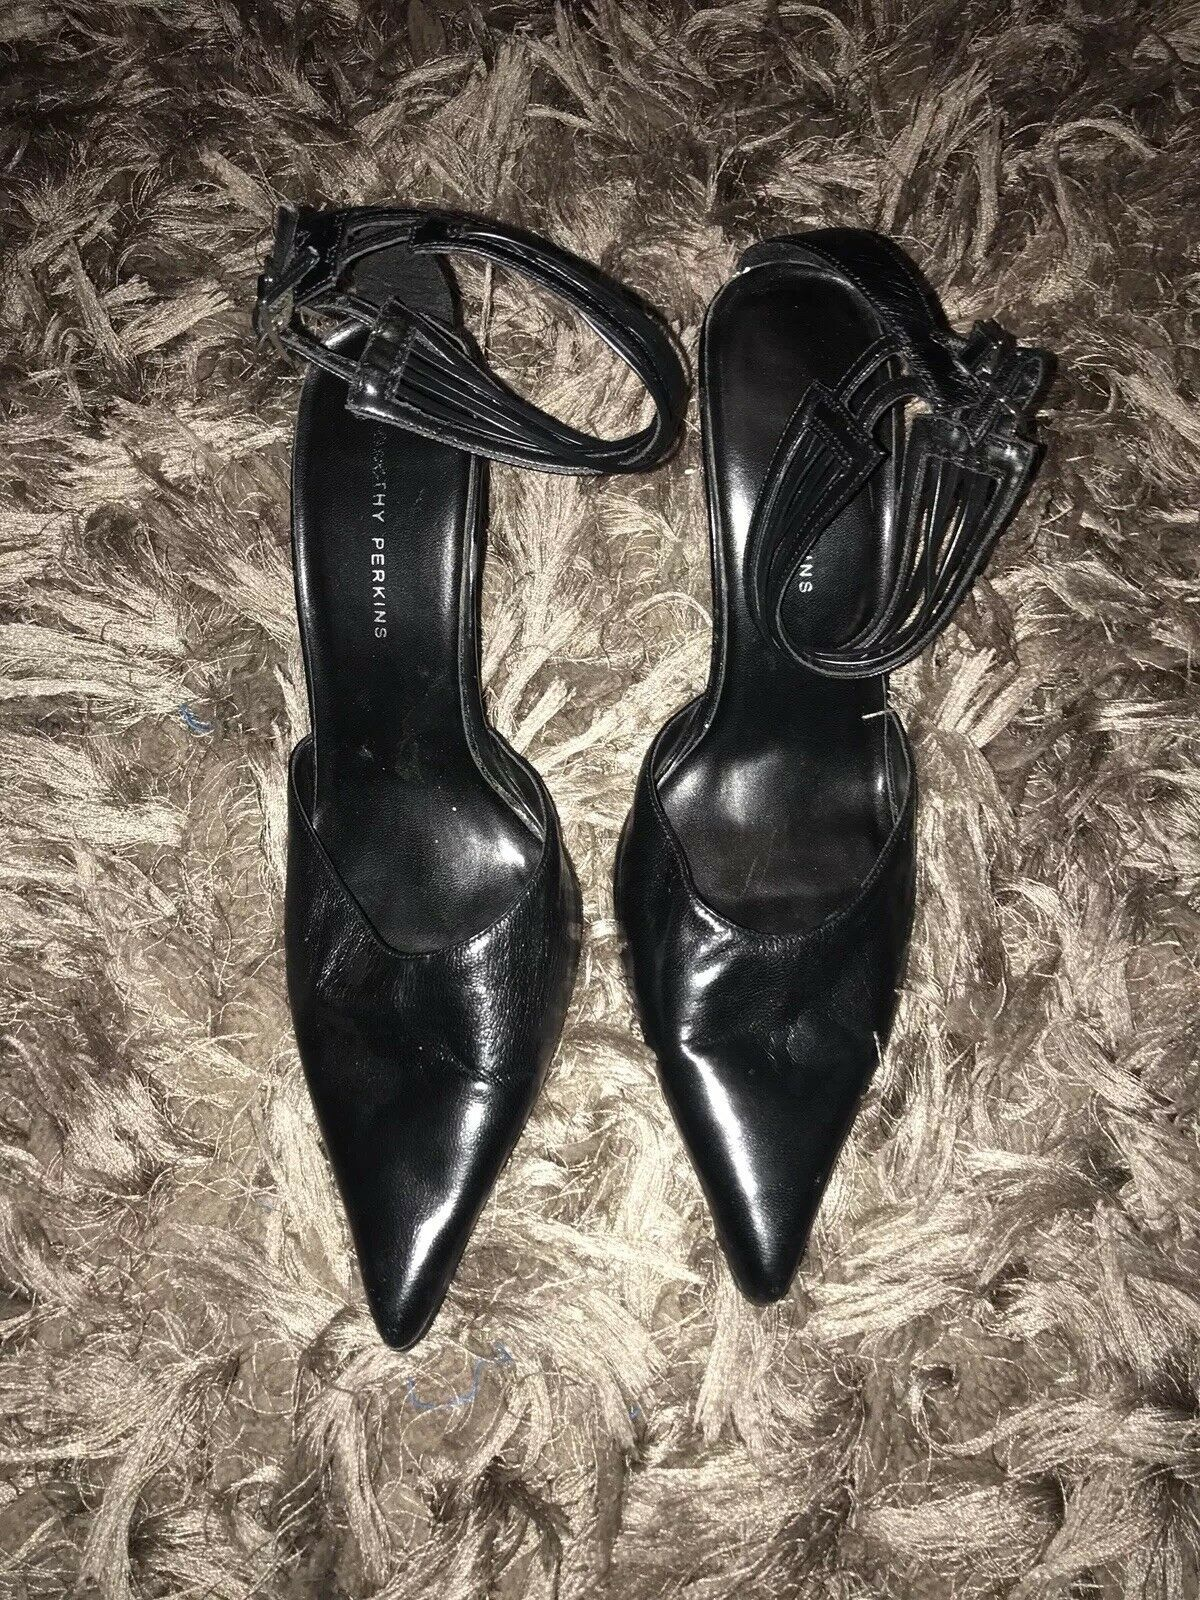 Man/Woman Dorothy Perkins gift Heels Size 7 Ideal gift Perkins for all occasions Sufficient supply Vintage tide shoes d10683